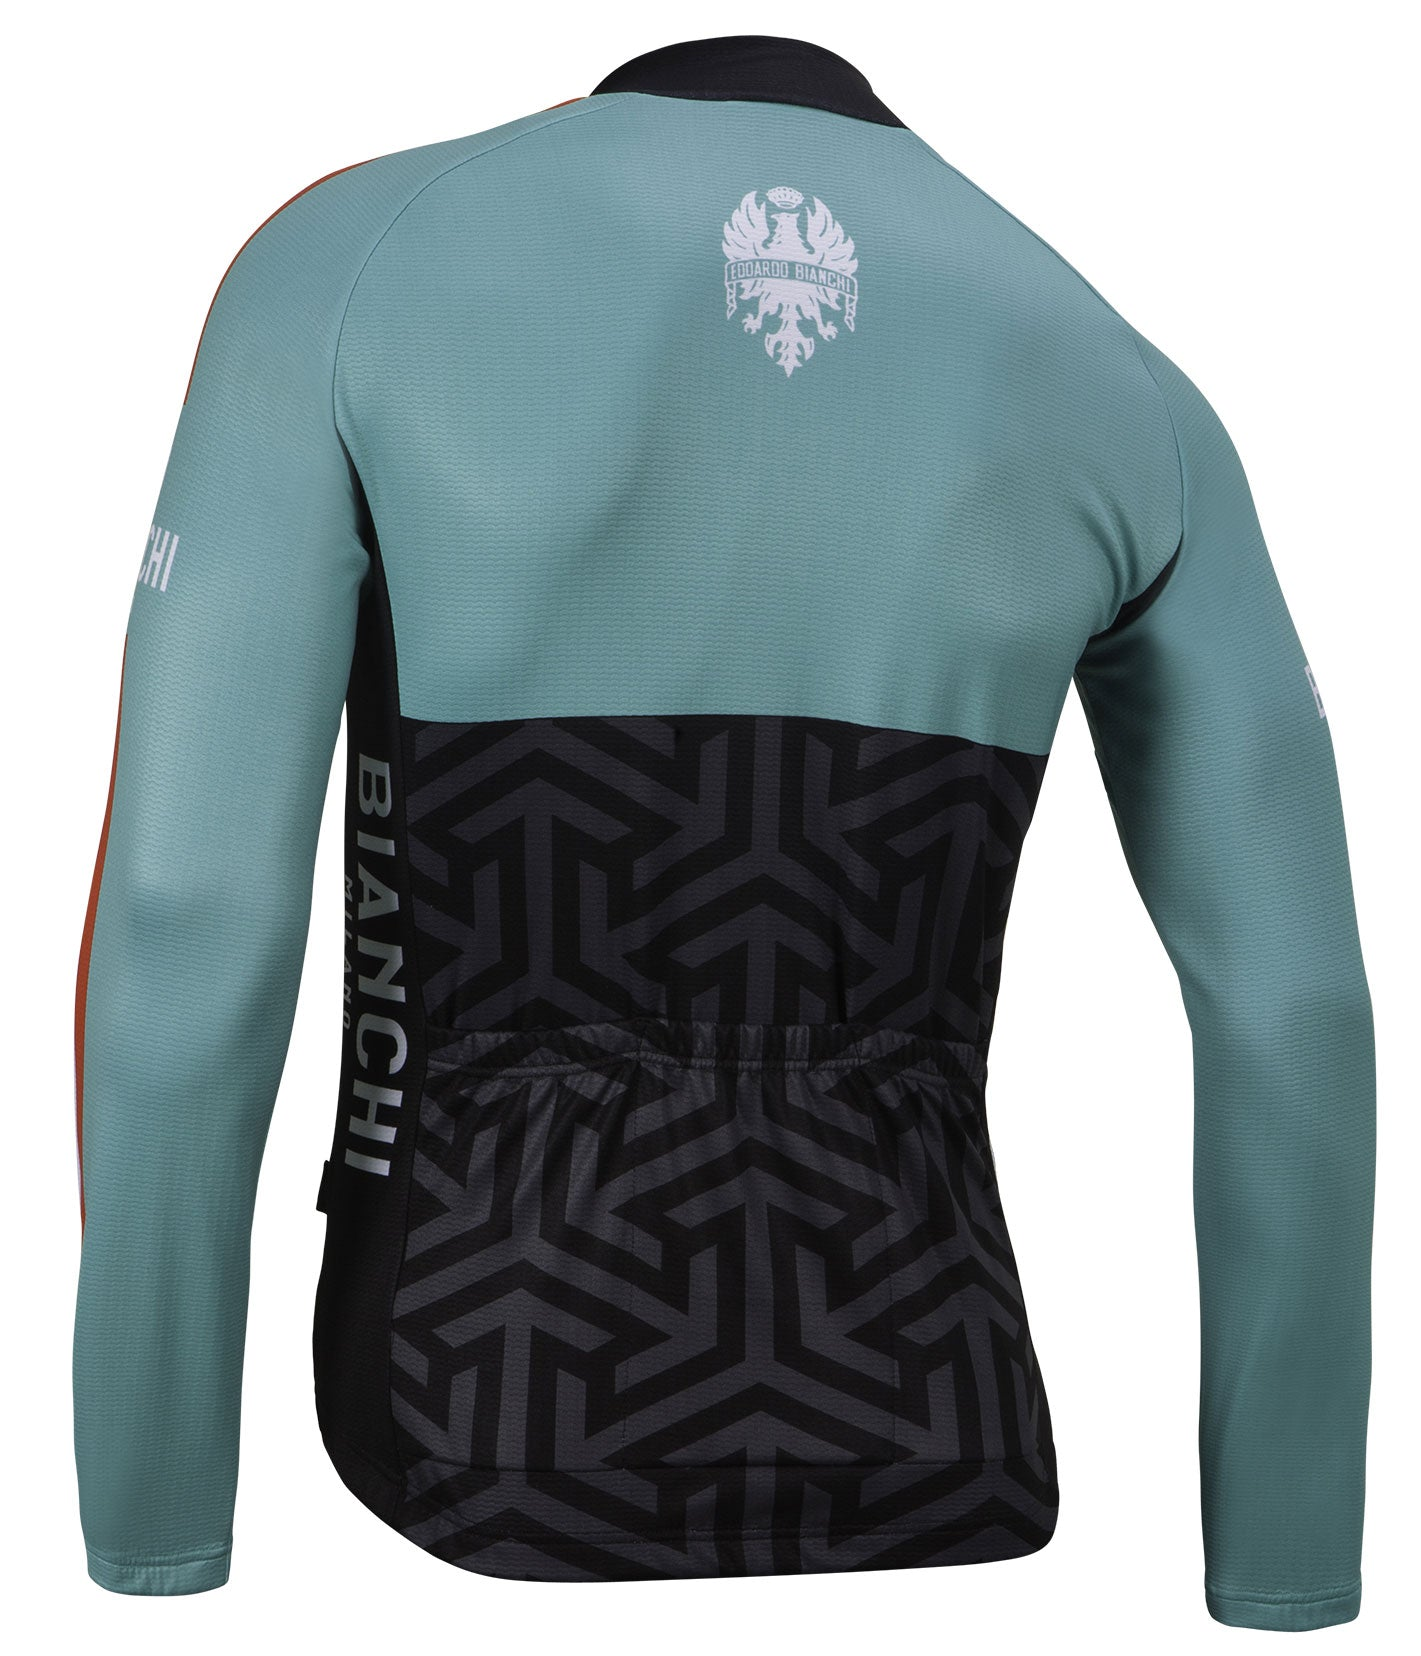 ... Bianchi Milano Montalto Celeste LS Jersey 2018 - Black Celeste  Bianchi  Milano Montalto Celeste Long Sleeve Cycling Jersey 47ad8ee6a